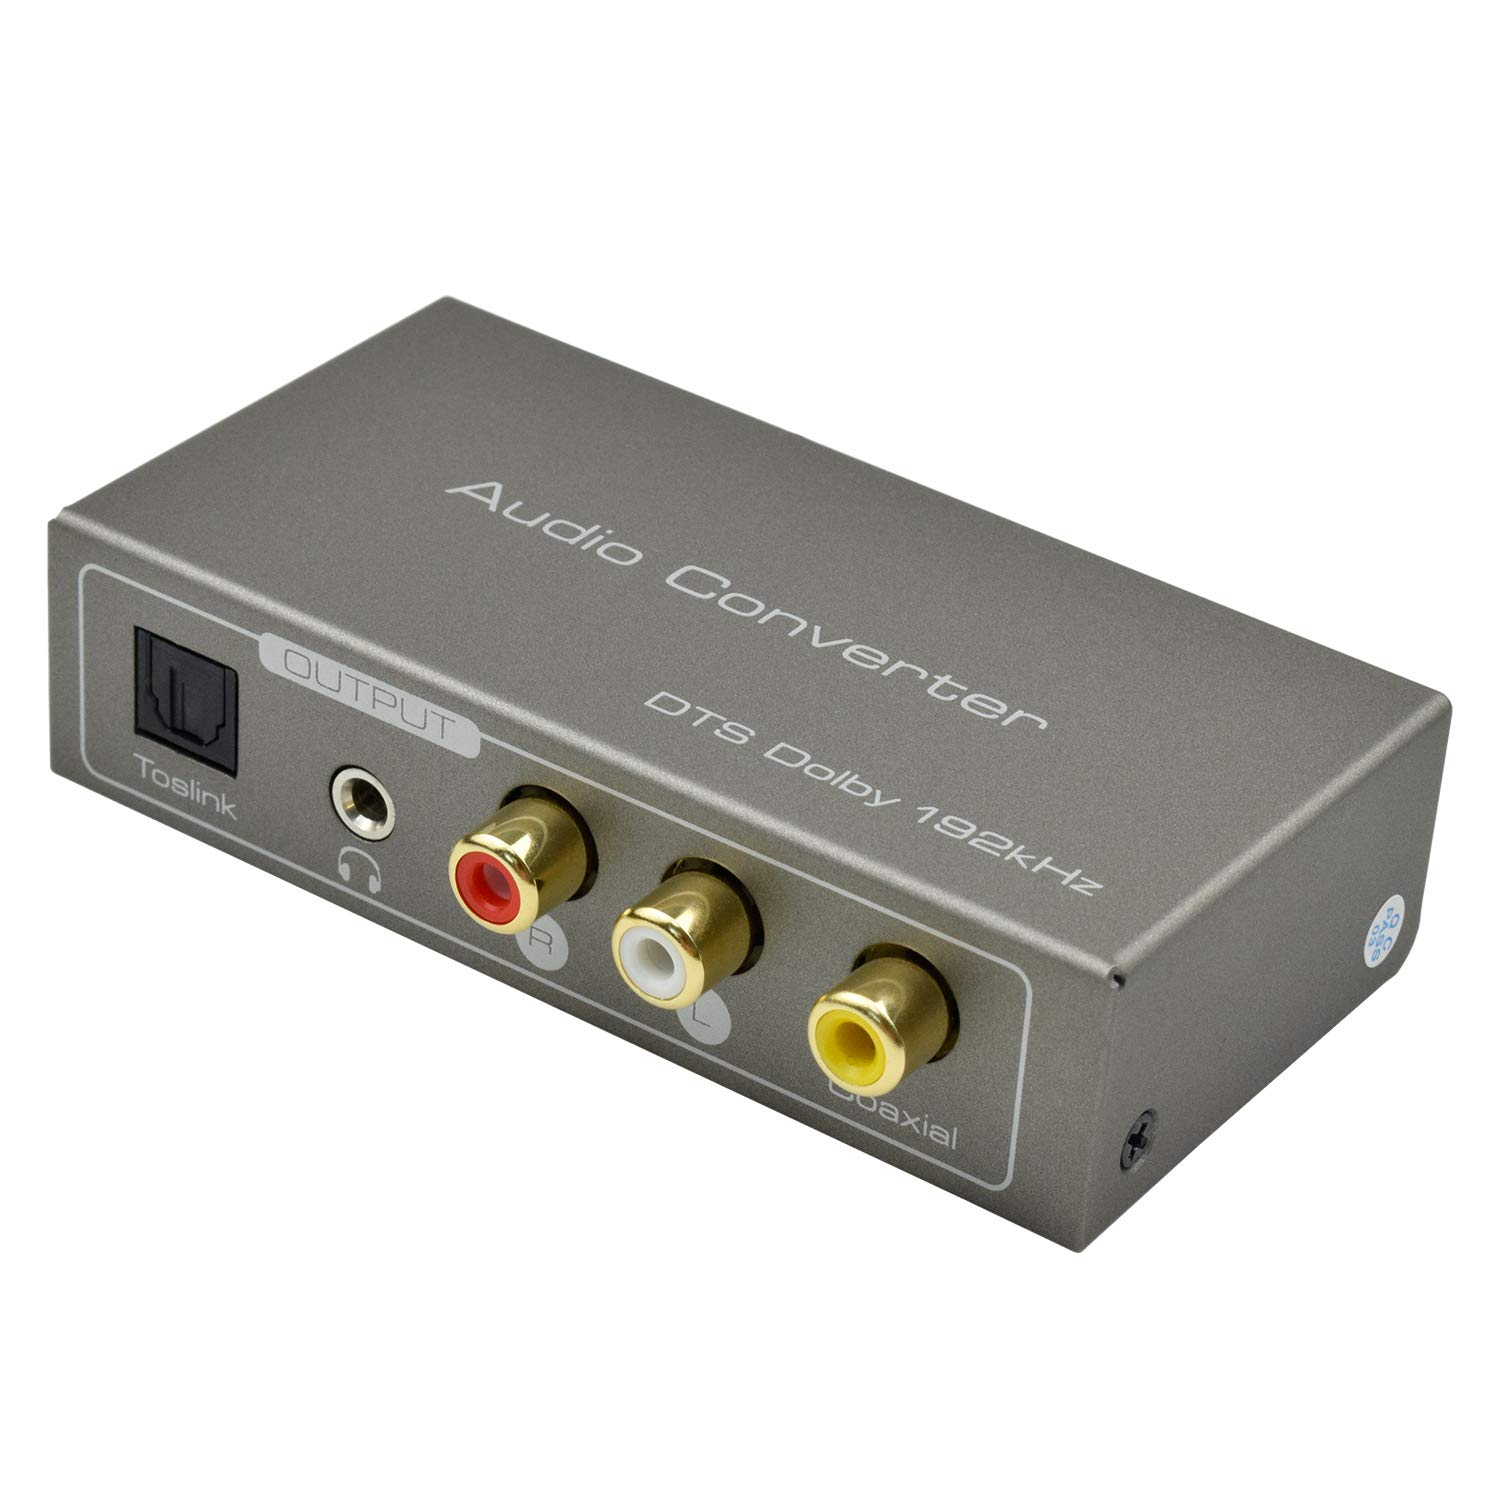 HDMI ARC Audio Adapter,Musou 192KHZ HDMI ARC Audio Extractor HDMI ARC or Digital Optical Toslink Coaxial to Optical or Analog 3.5mm L/R Stereo Audio Splitter